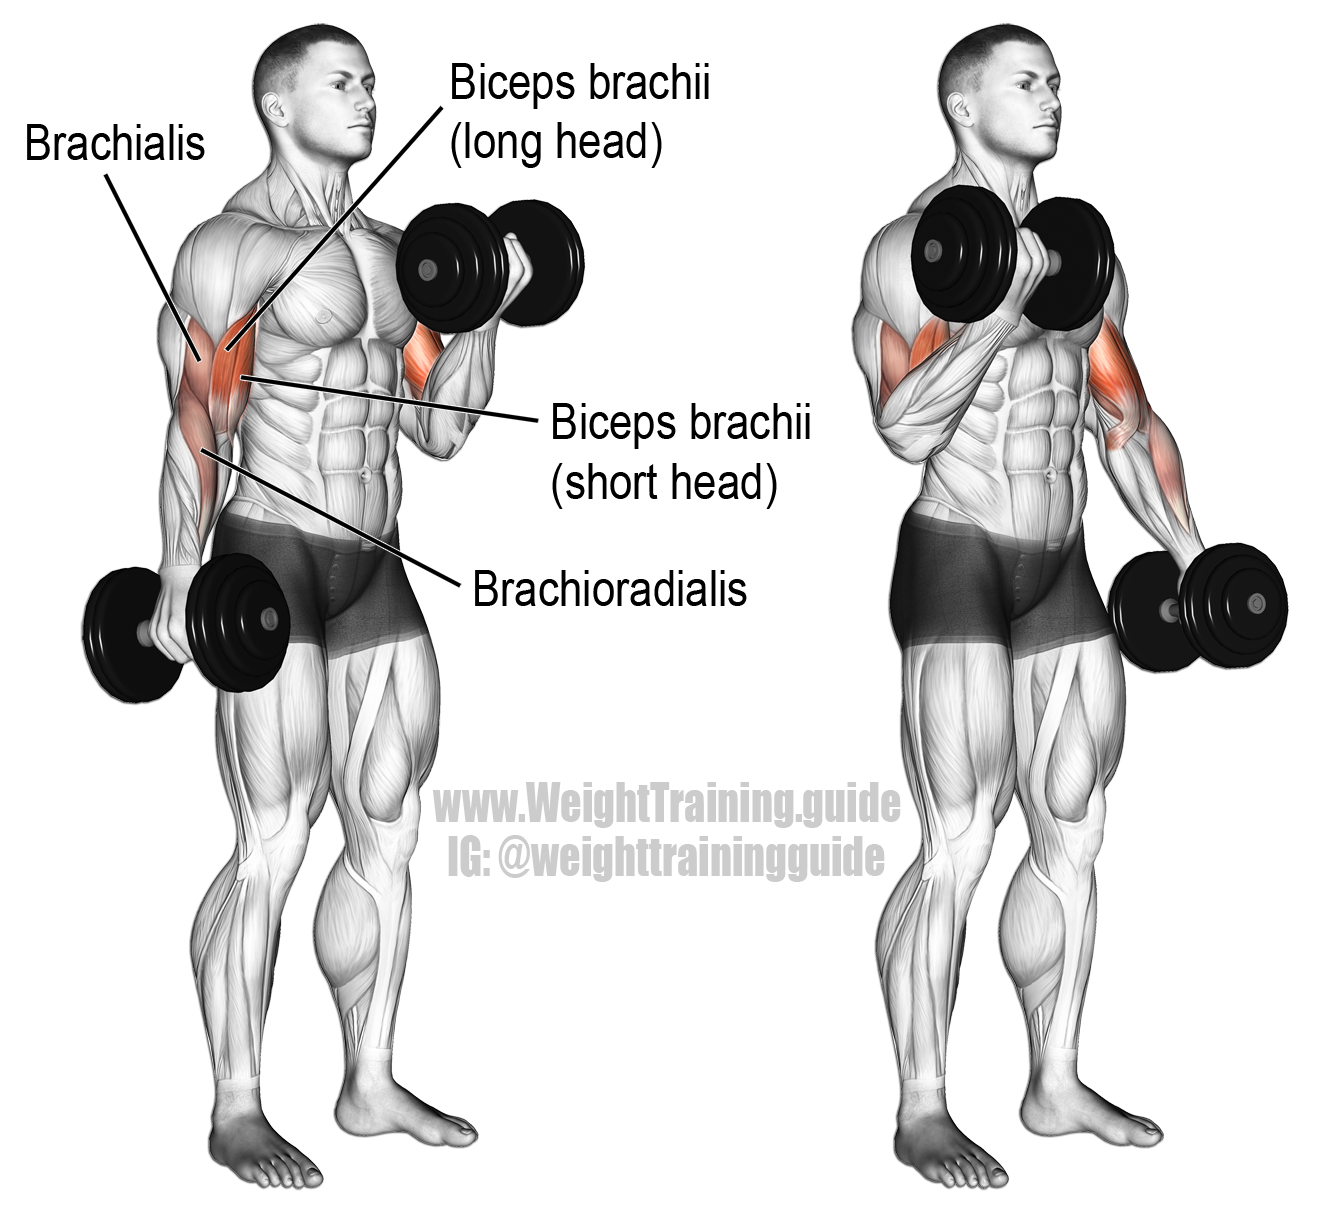 Dumbbell Exercises Without A Bench: Dumbbell Curl Exercise Instructions And Video